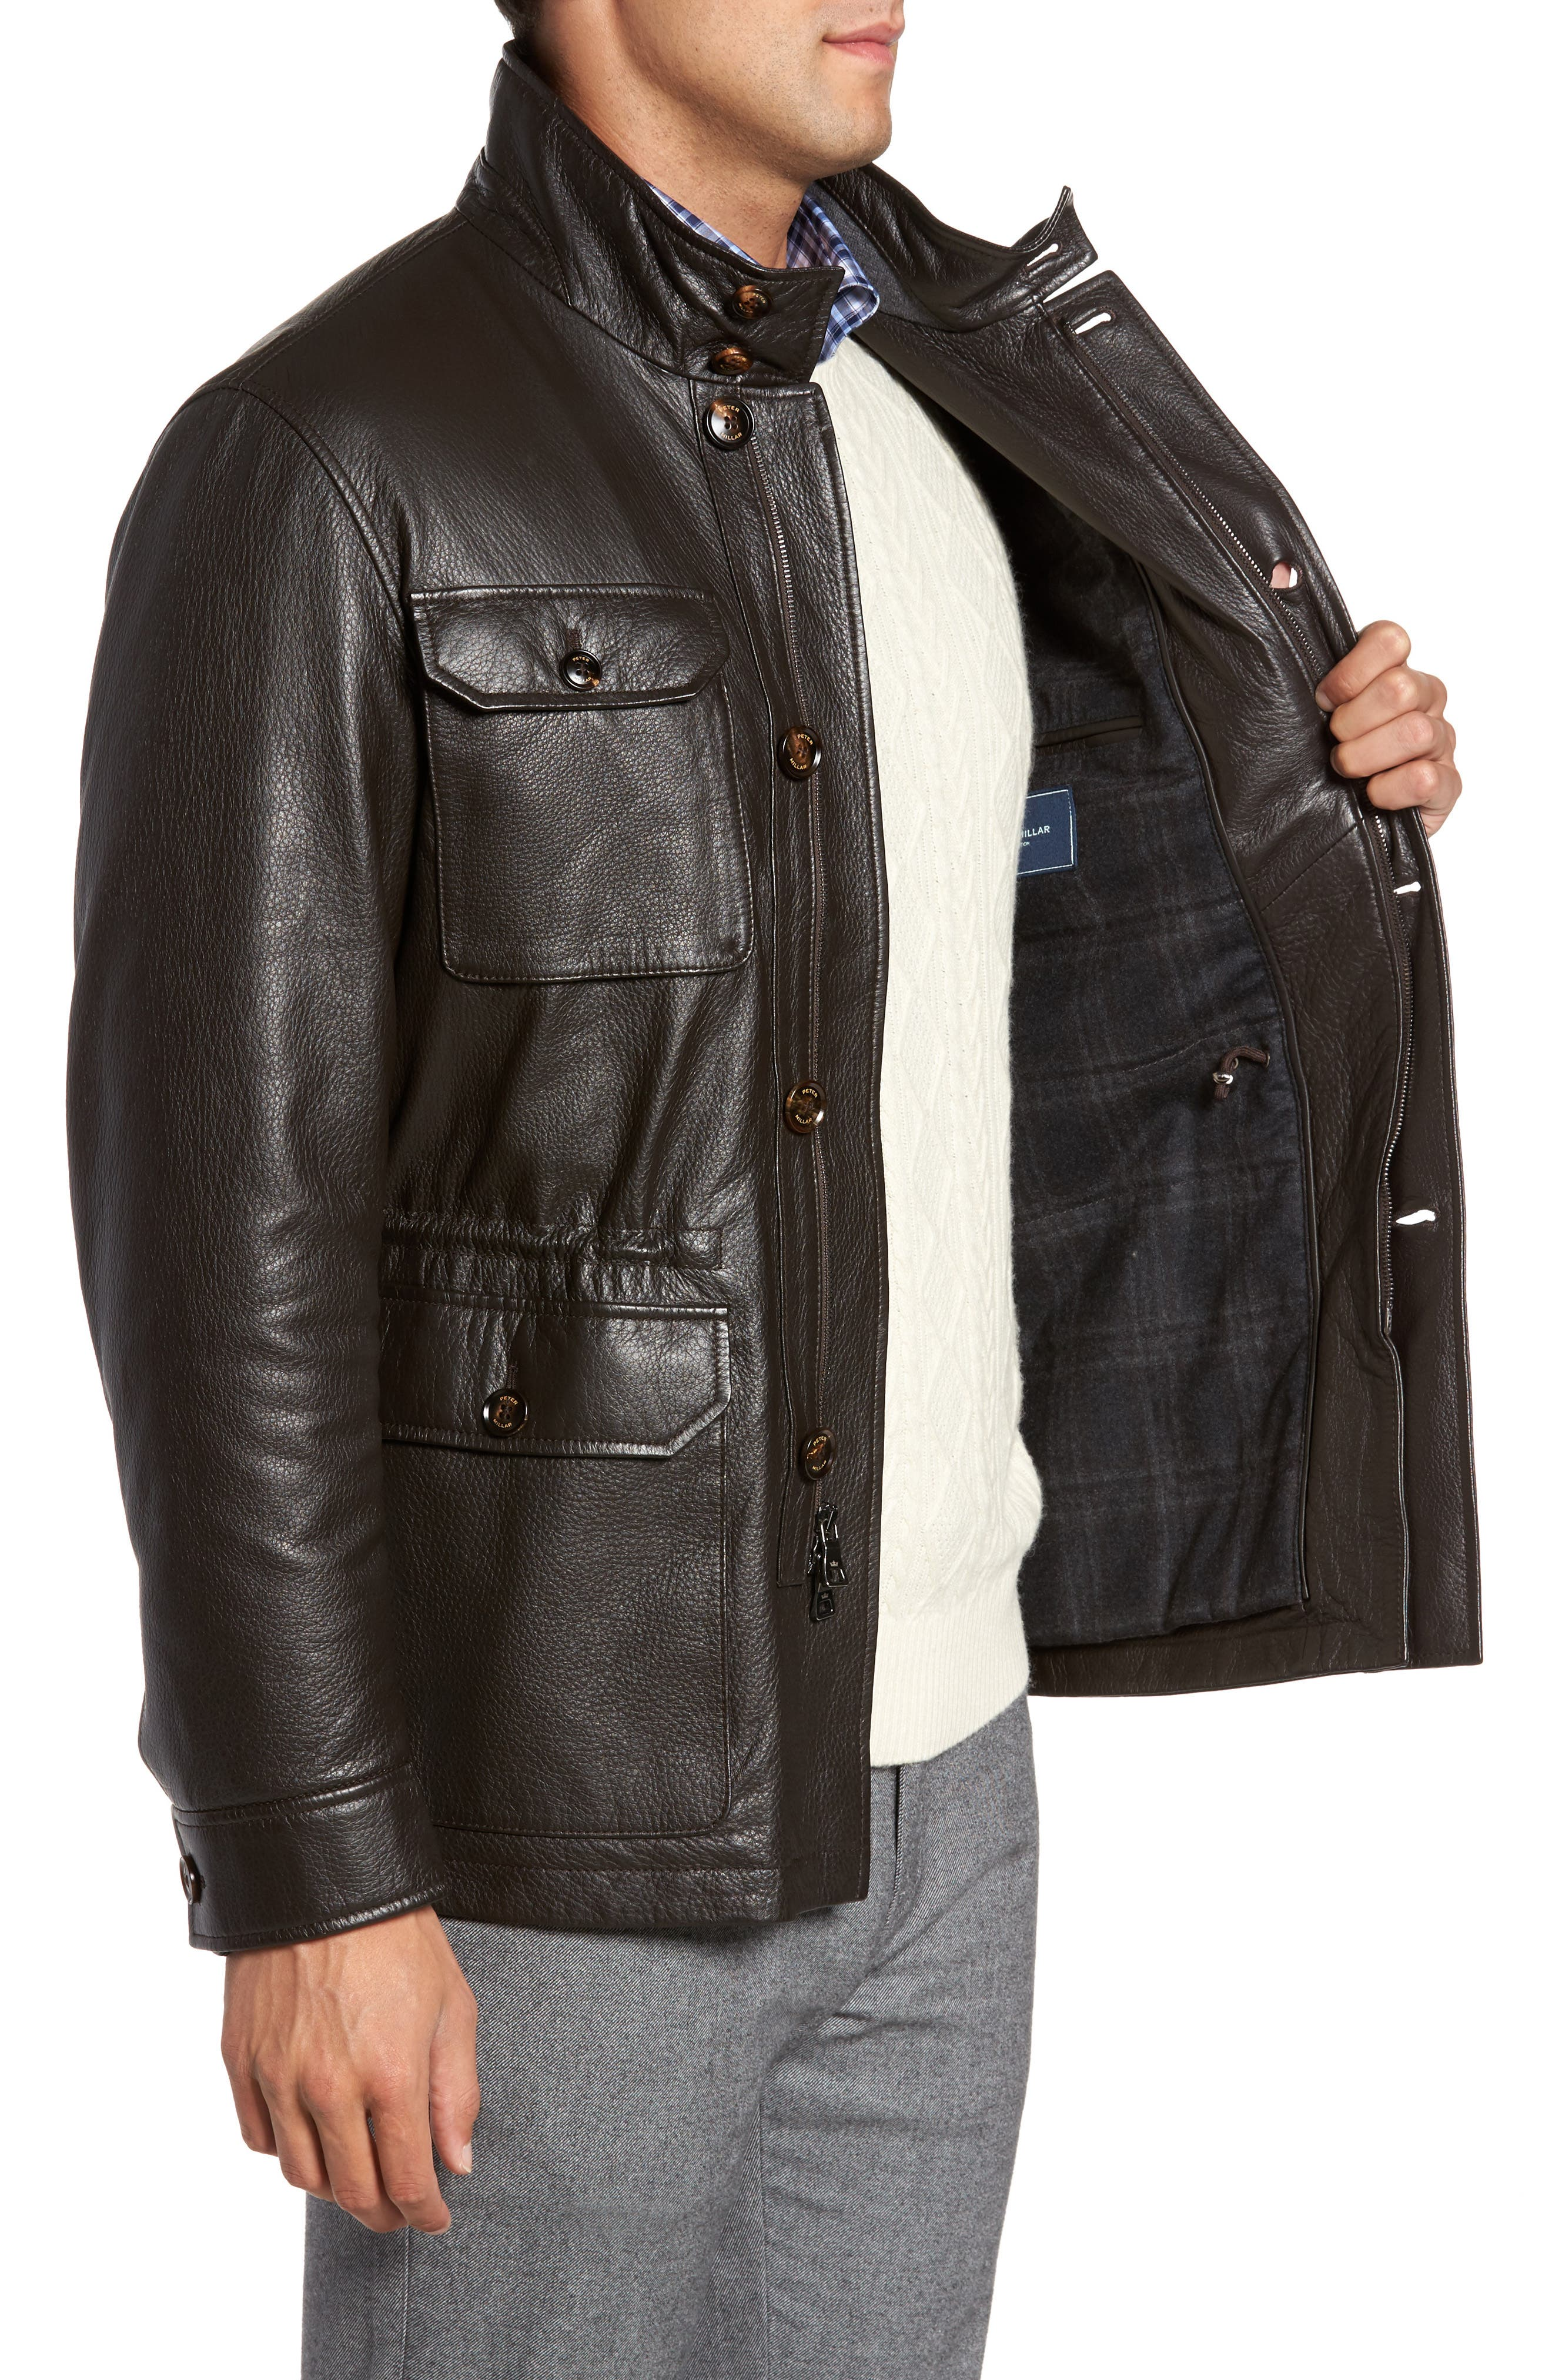 Woodland Discovery Deerskin Leather Jacket,                             Alternate thumbnail 3, color,                             Espresso